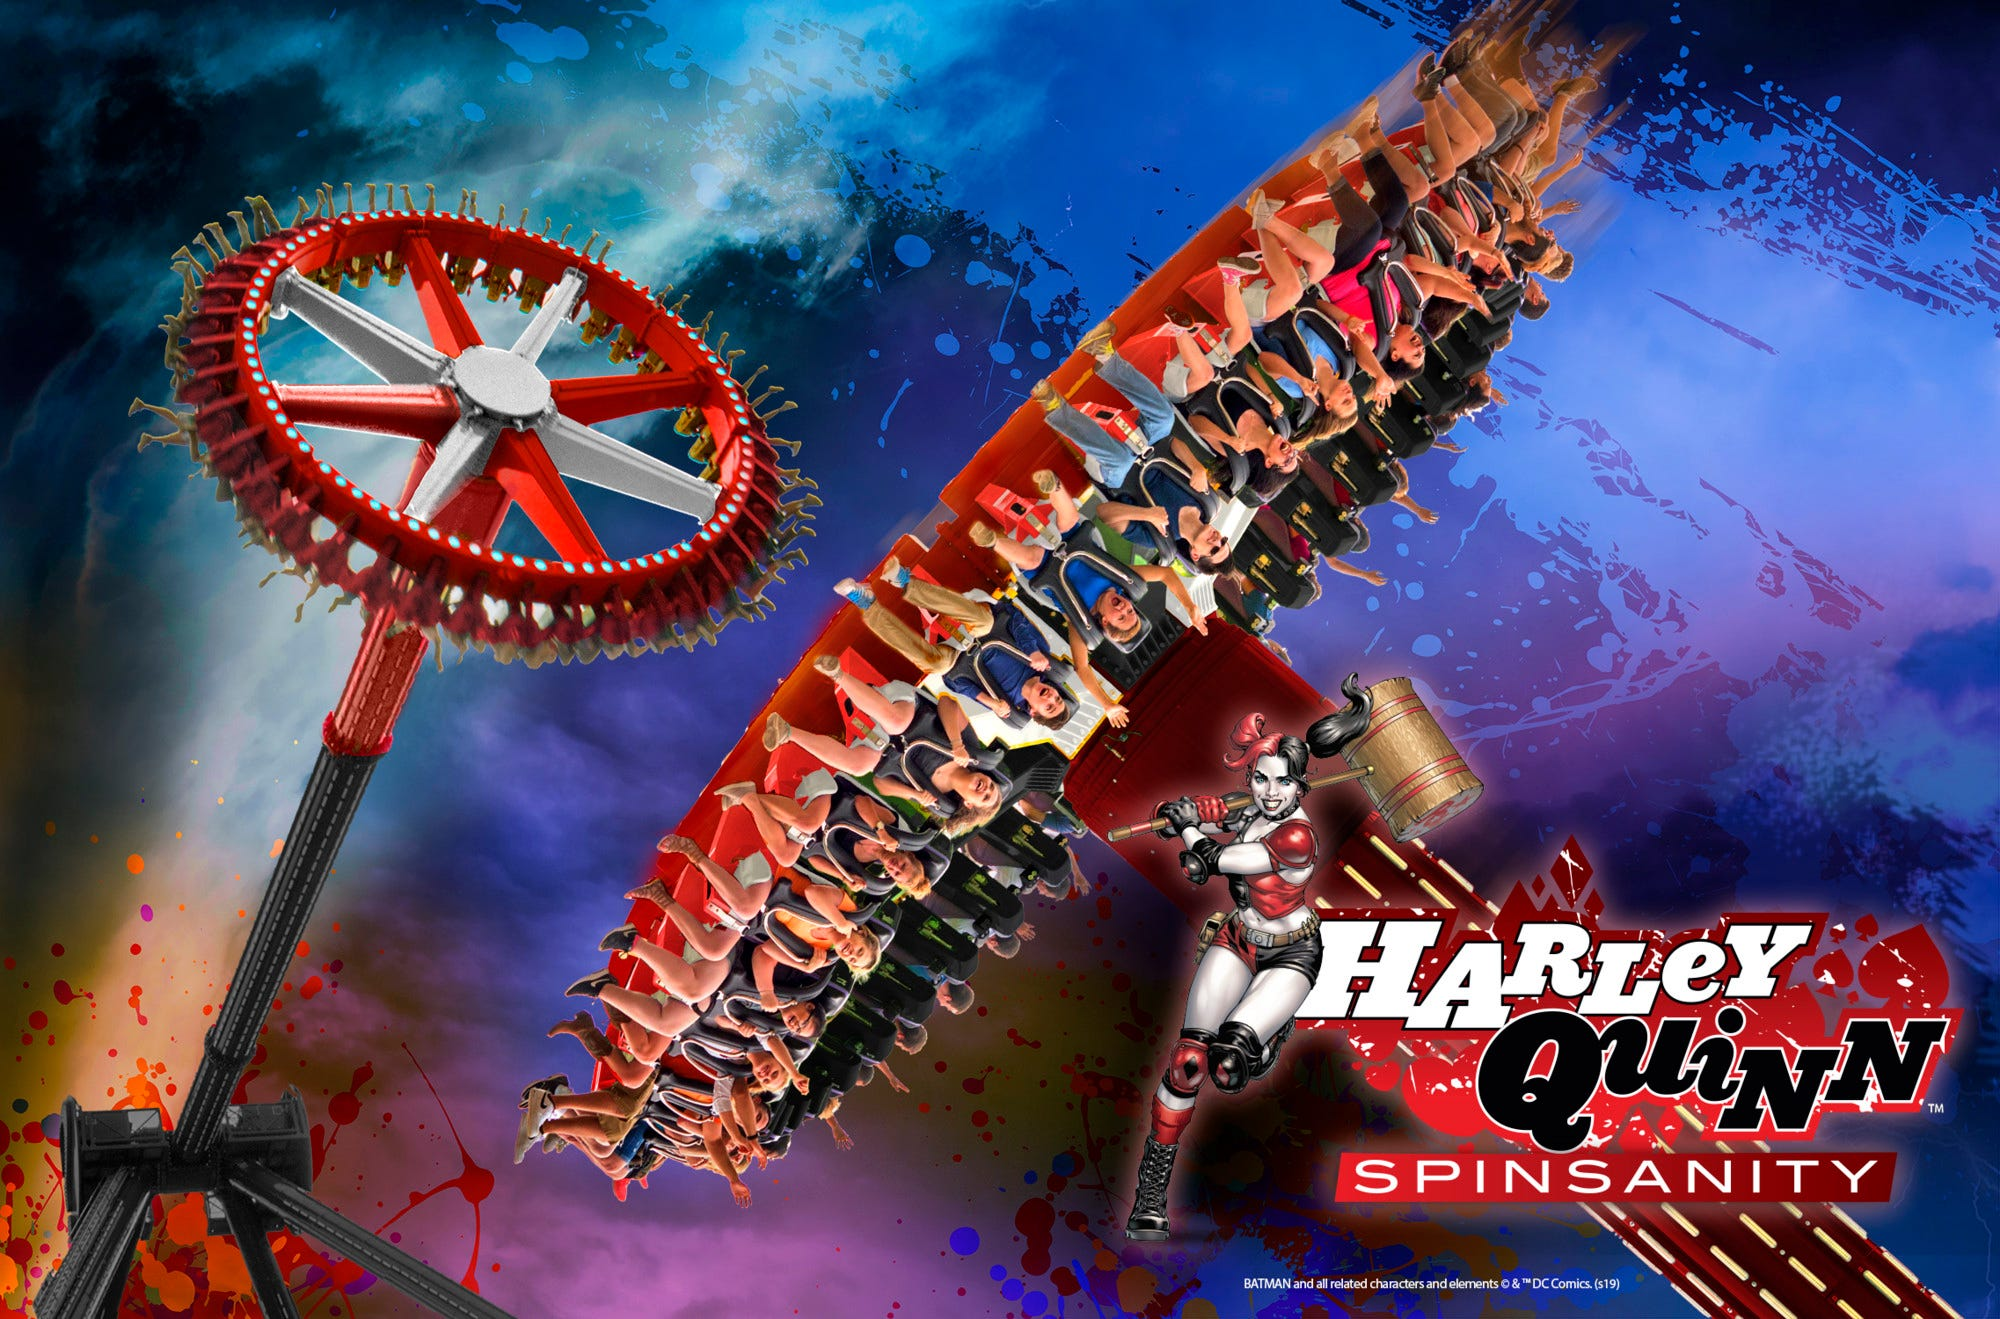 Promotional photo of Harley Quinn Spinsanity at Six Flags America.